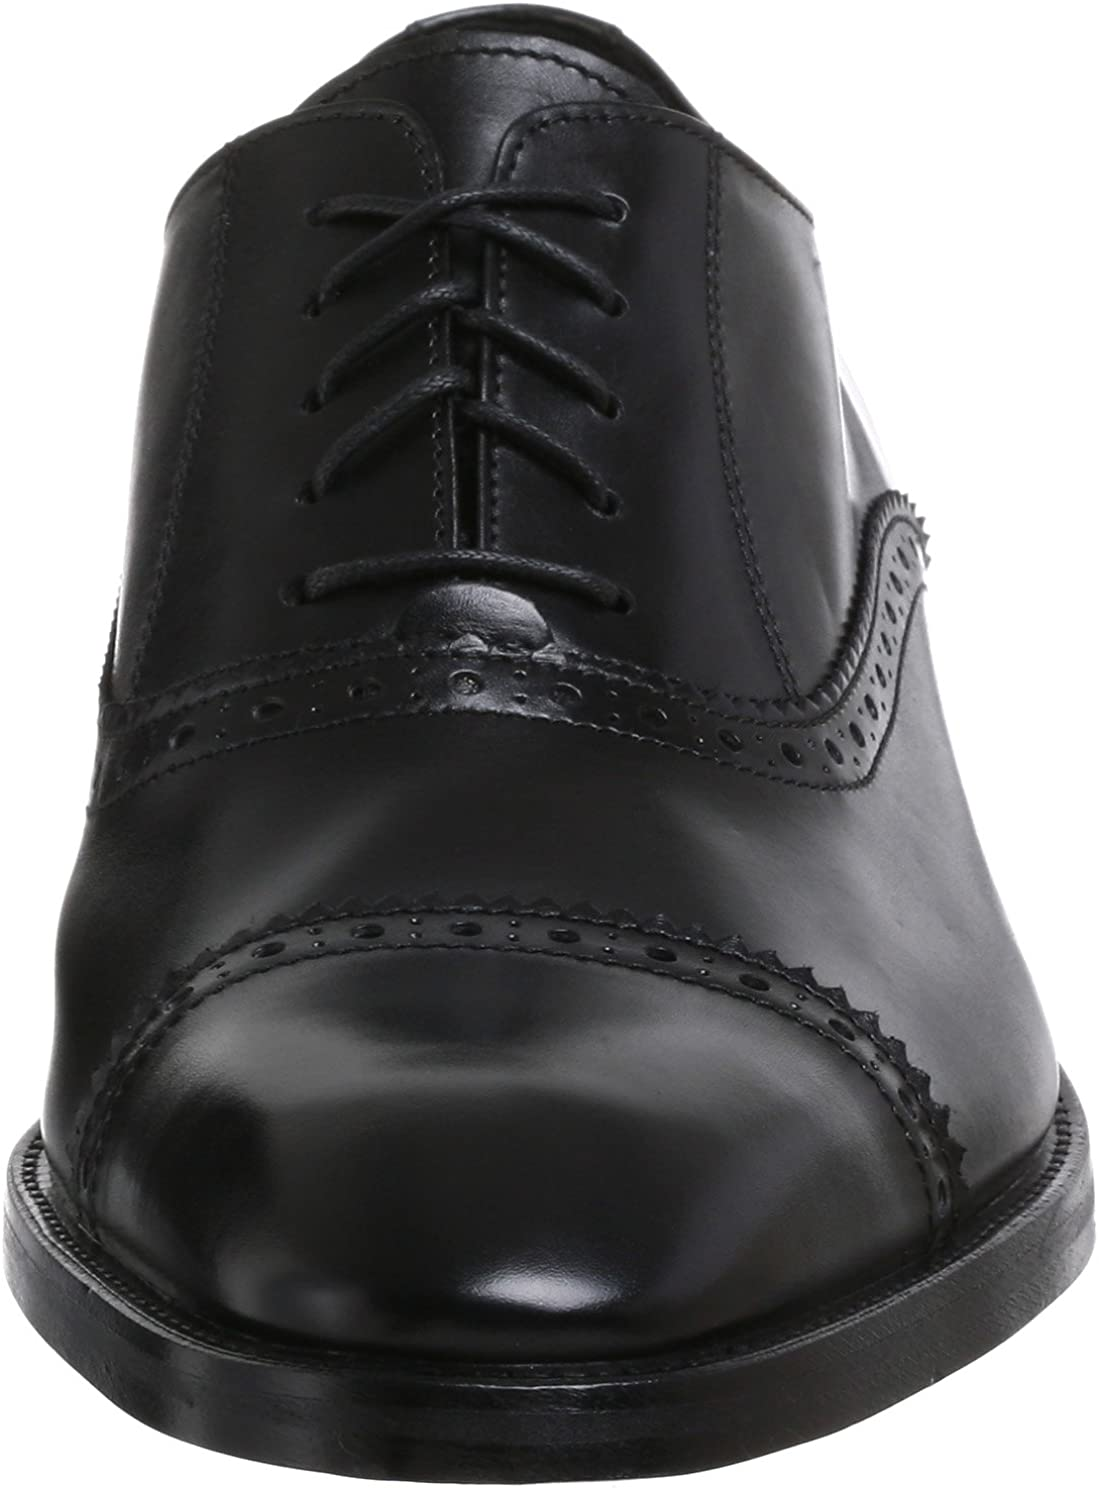 To Boot New York Men's Hornby Oxford